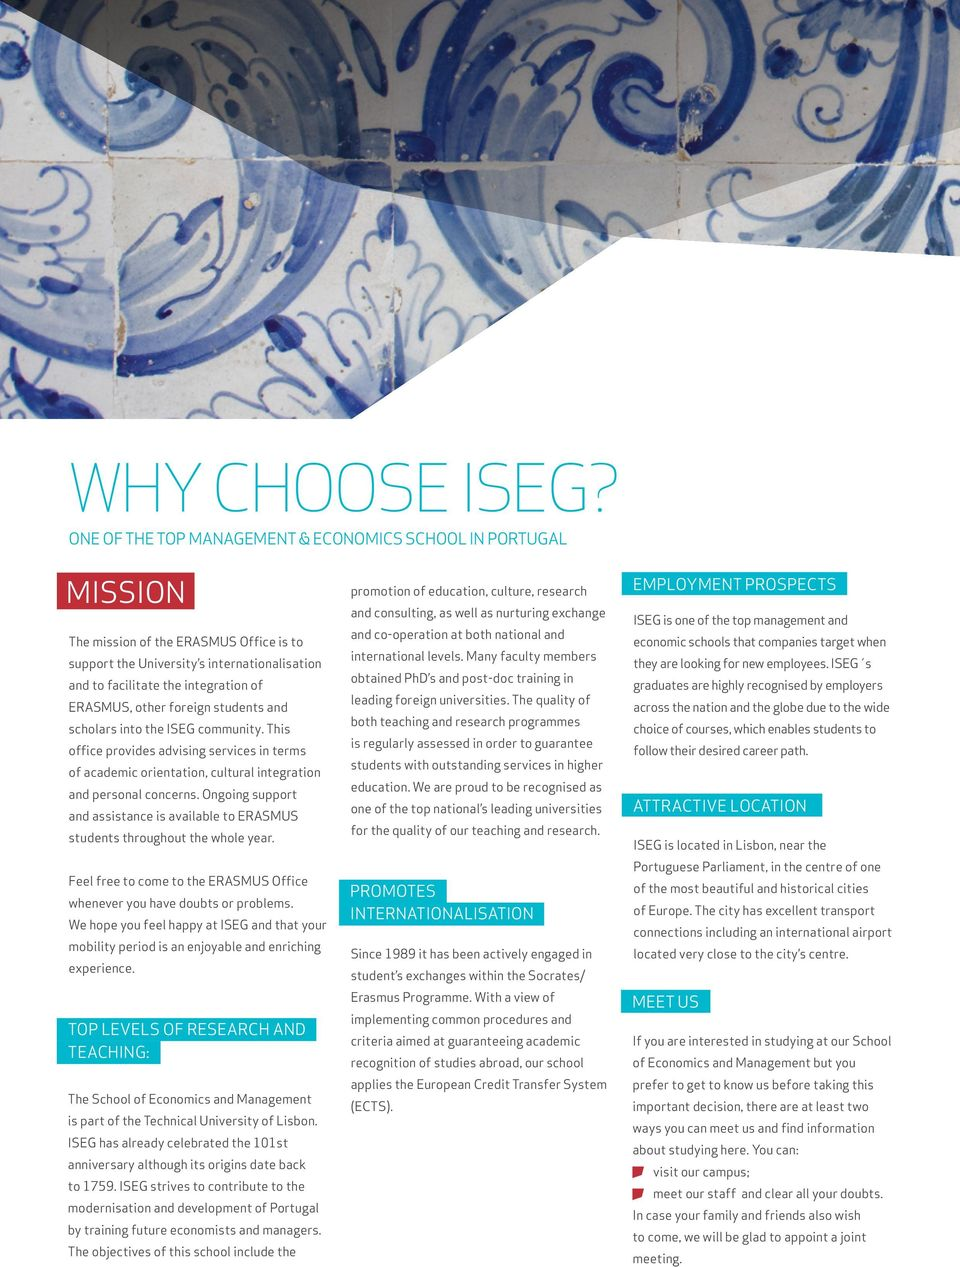 other foreign students and scholars into the ISEG community. This office provides advising services in terms of academic orientation, cultural integration and personal concerns.